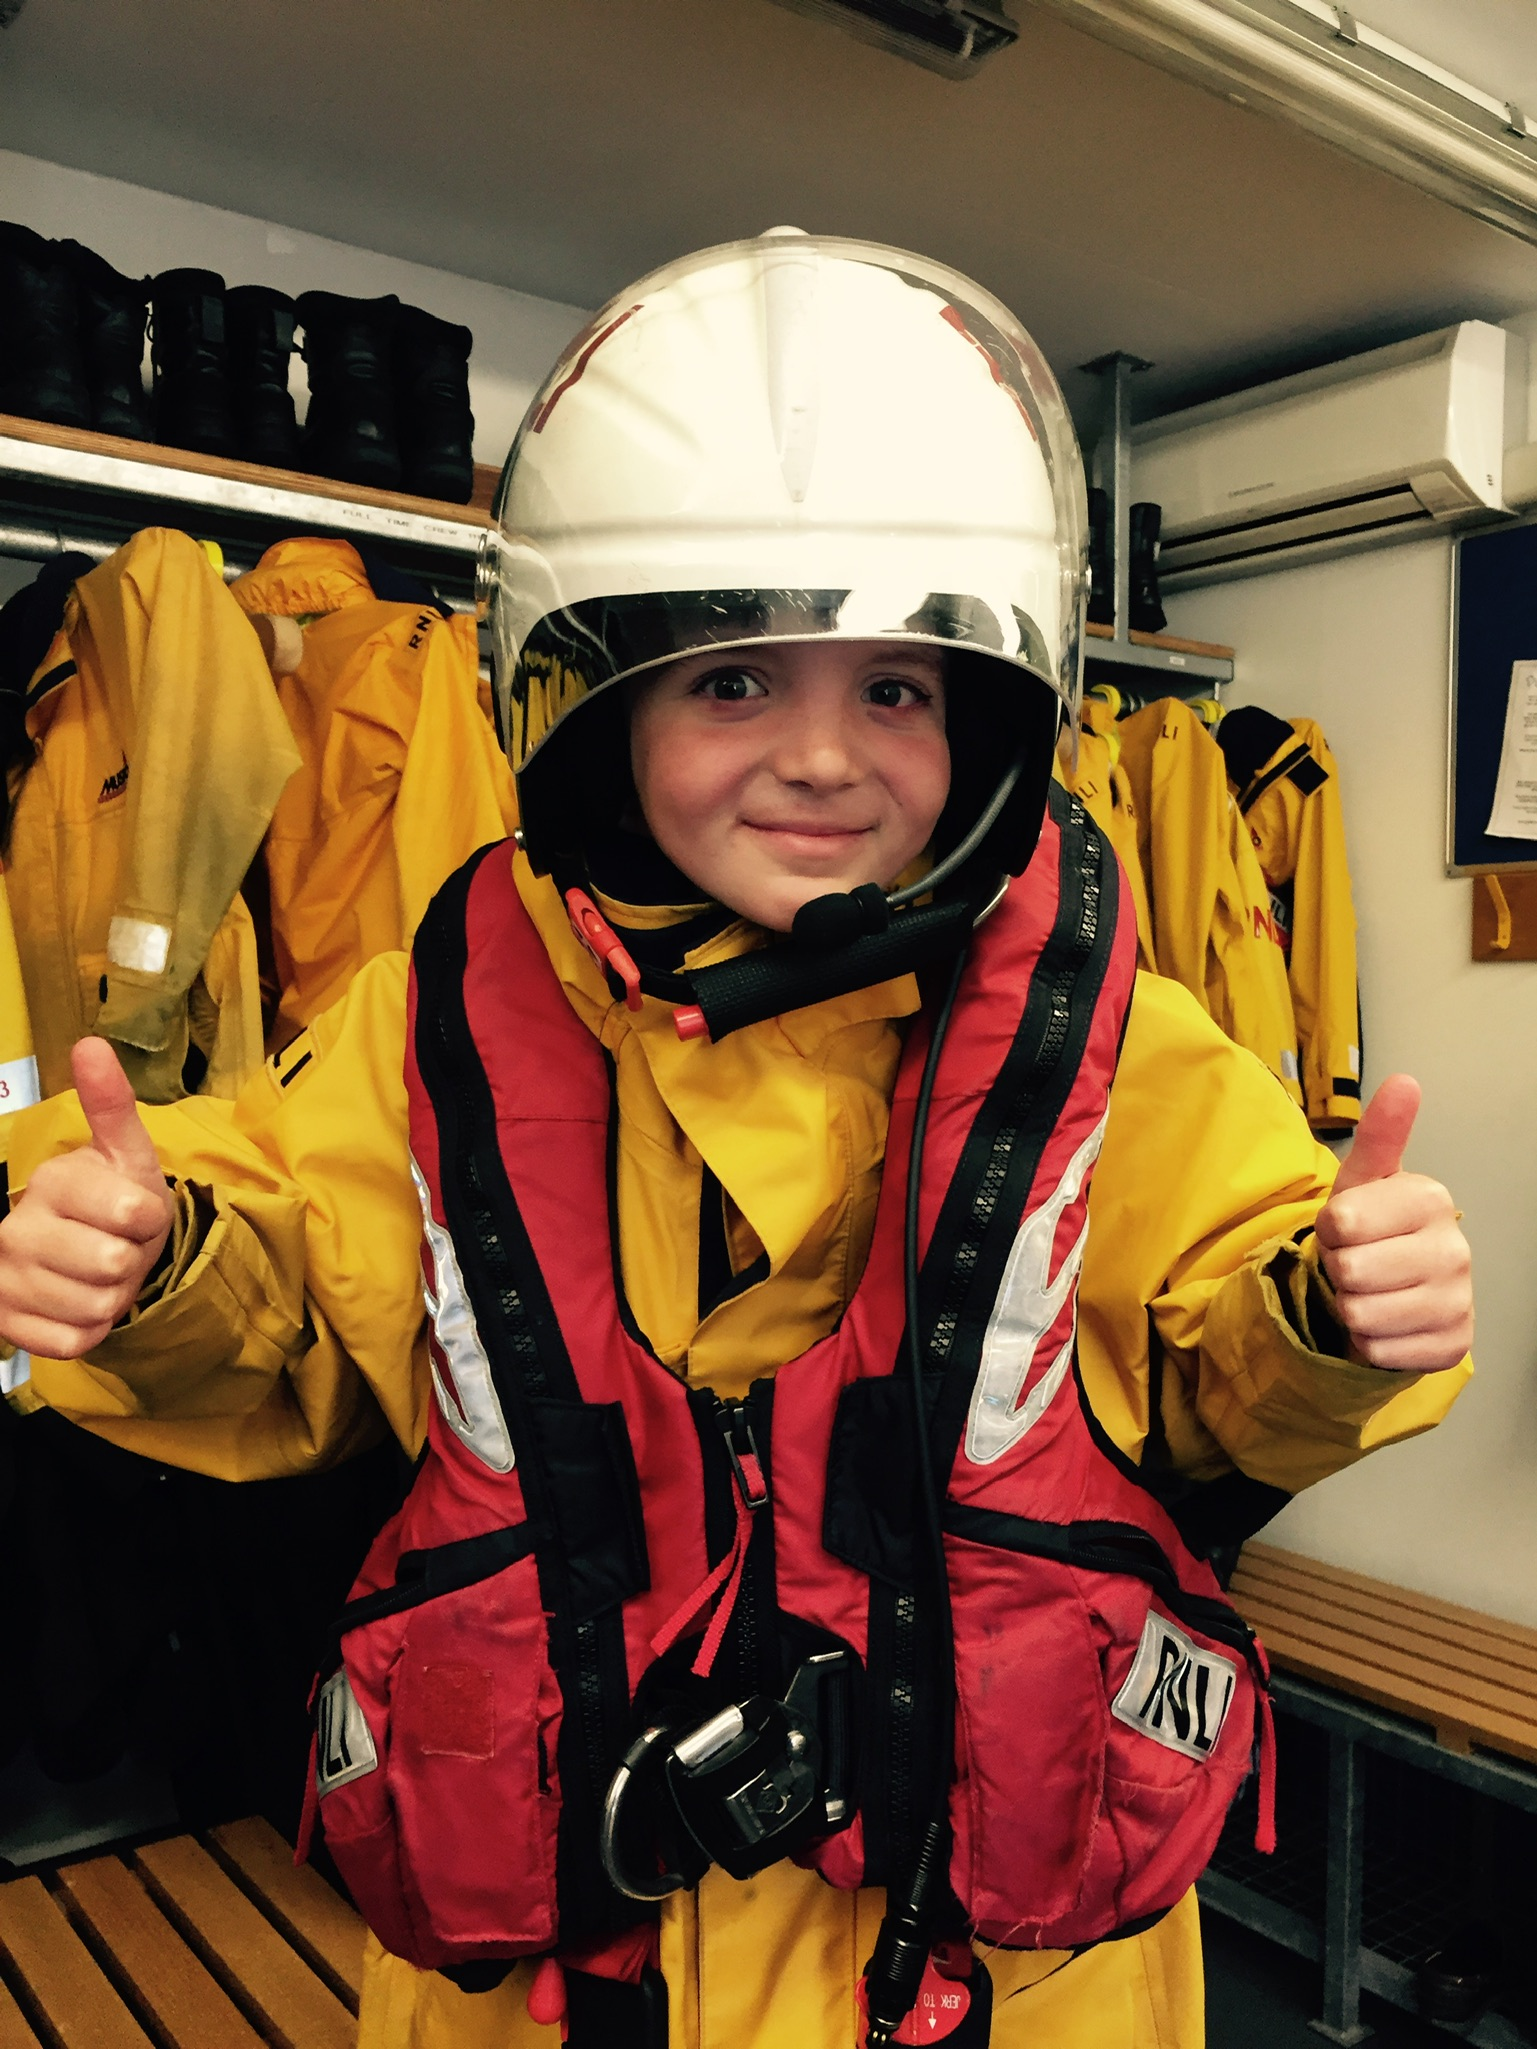 Oliver on the lifeboat